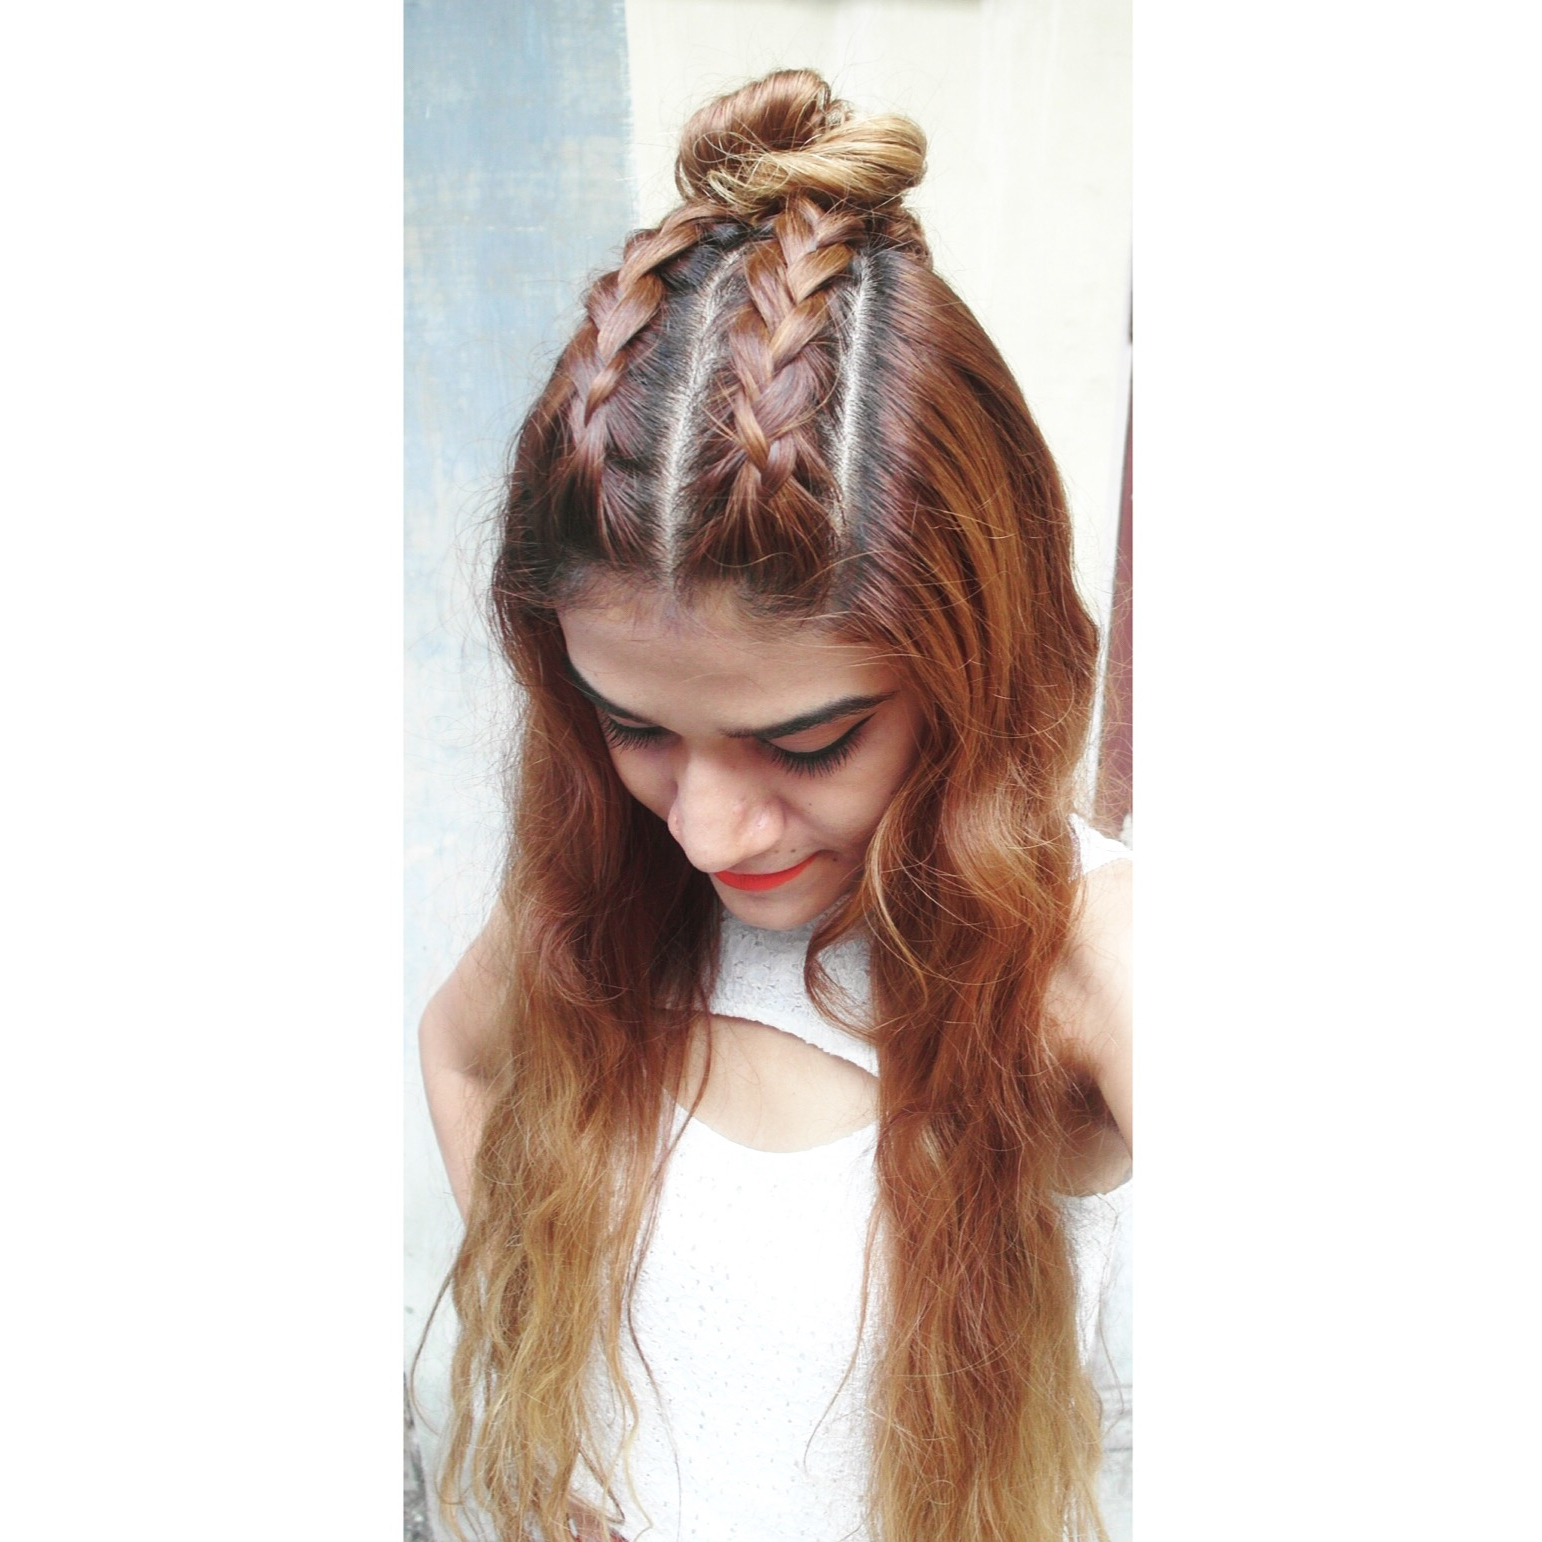 Recent Double Half Up Mermaid Braid Hairstyles Pertaining To Tanvi Vayla » Double Dutch Braid With Top Knot Half Up (View 18 of 20)